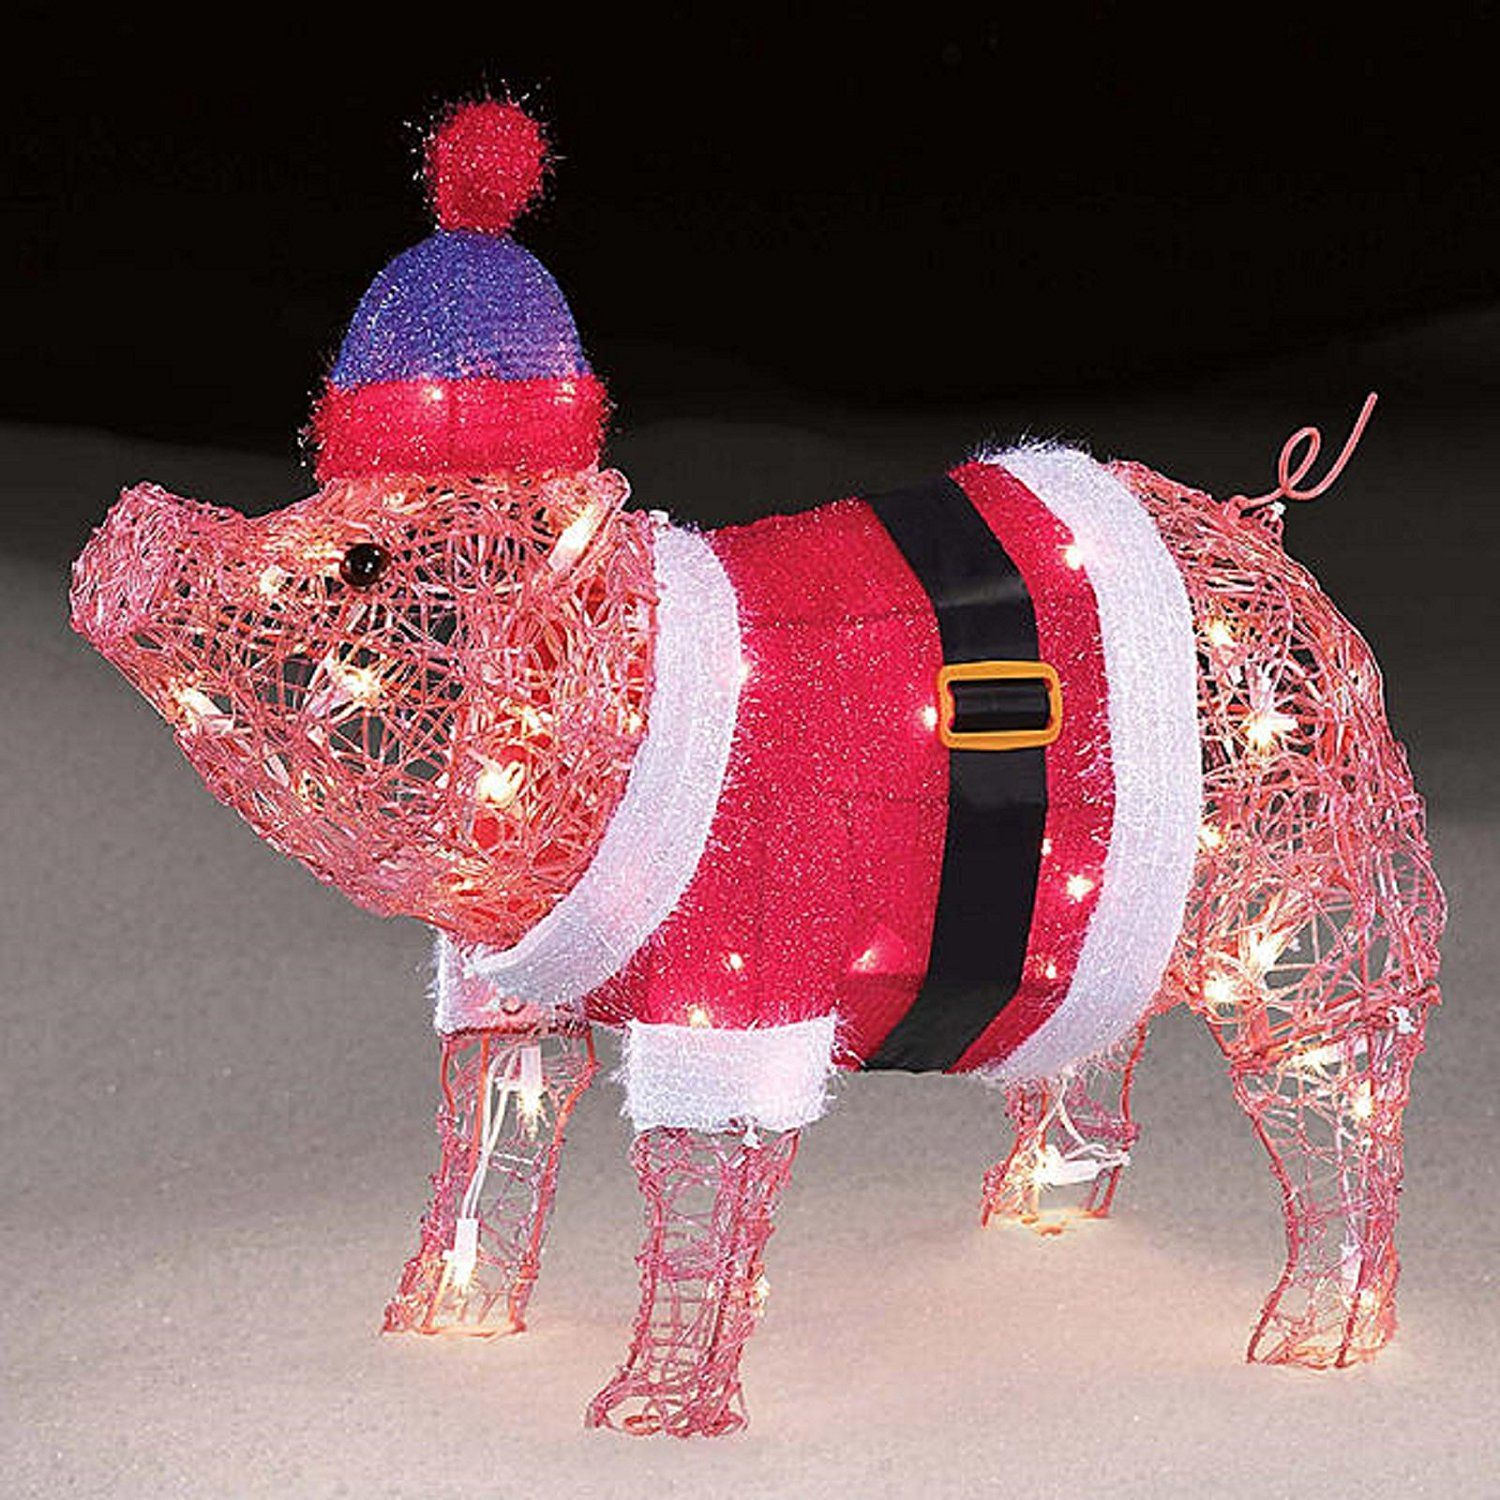 Precious little Holiday 20 inch Pre lit Baby Pig in Santa